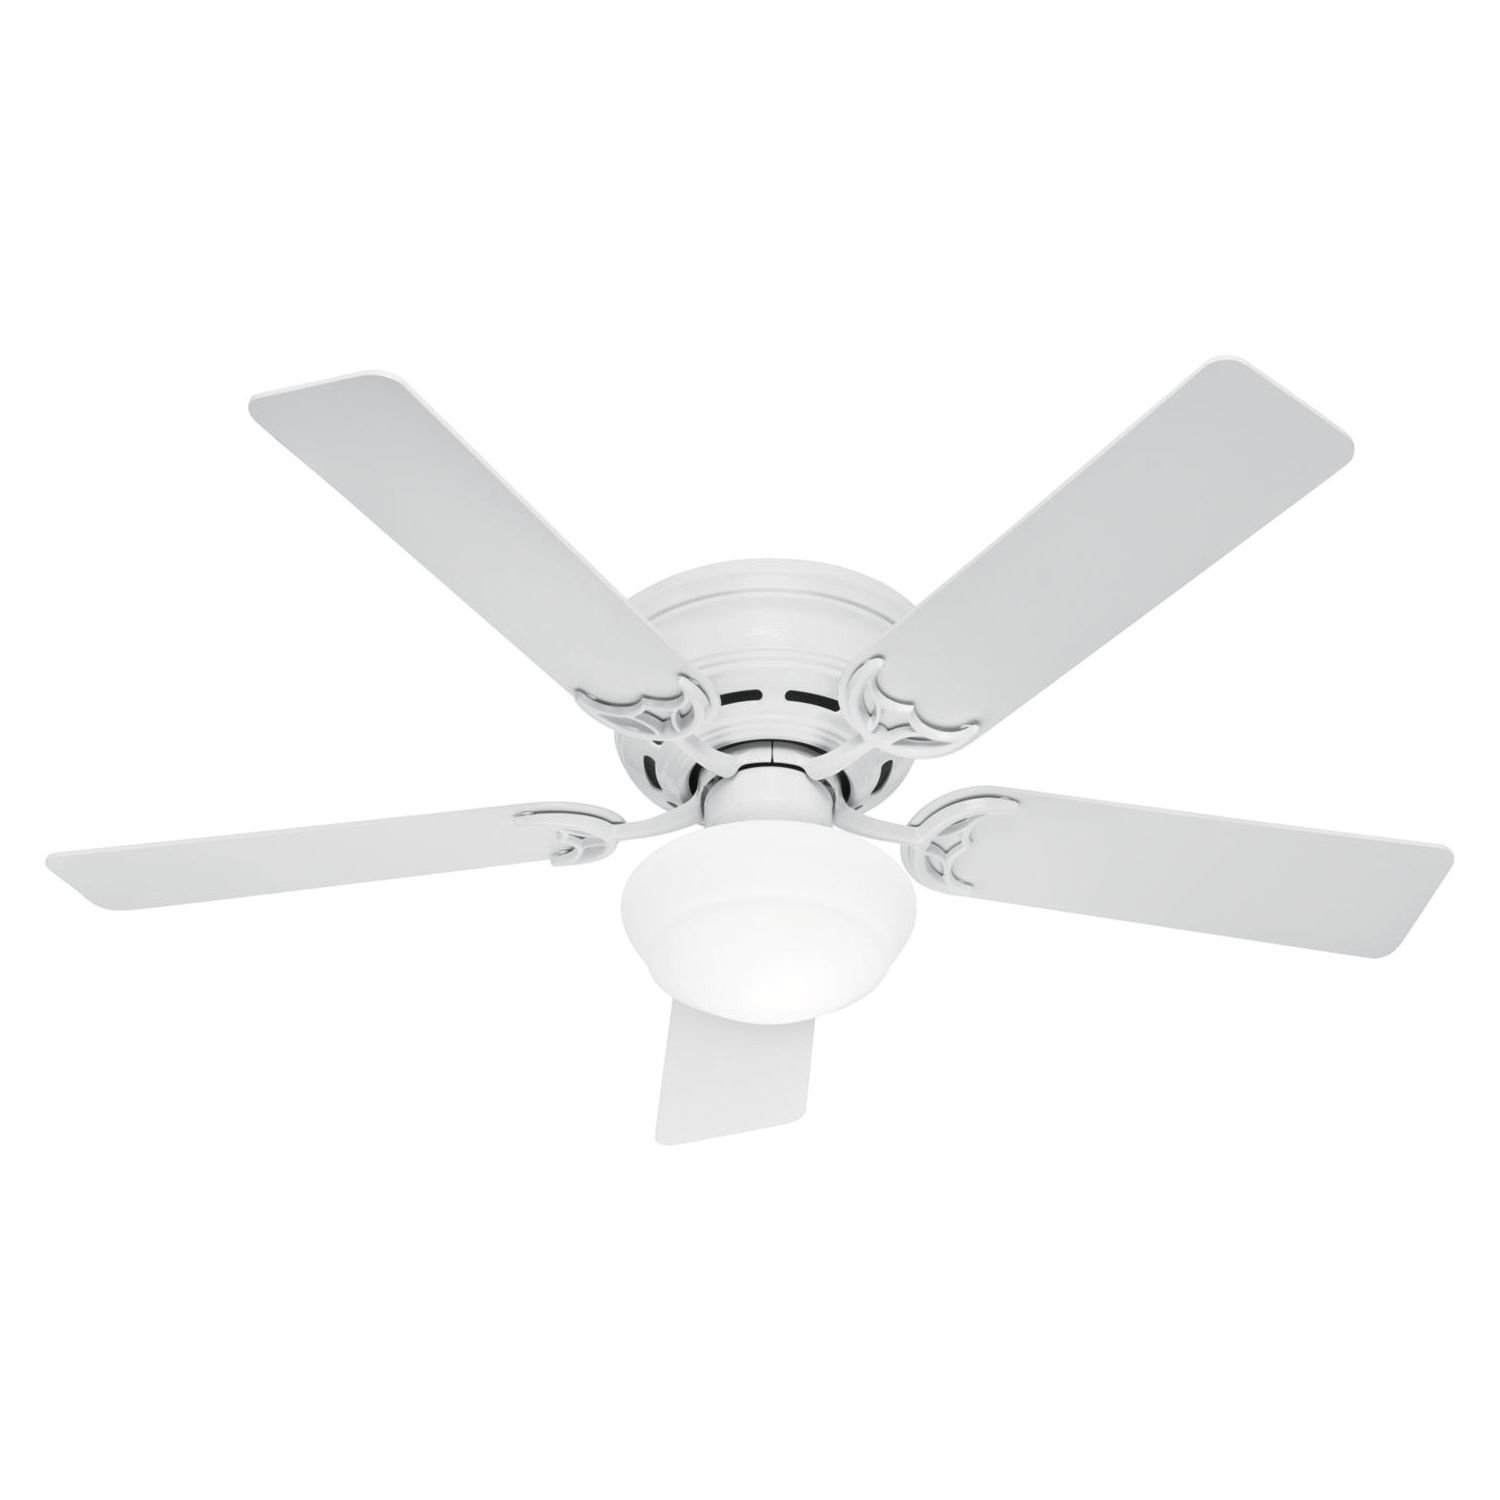 This hunter 52 inch ceiling fan iii plus 53075 combines 19th this hunter 52 inch ceiling fan iii plus 53075 combines 19th century craftsmanship with aloadofball Images